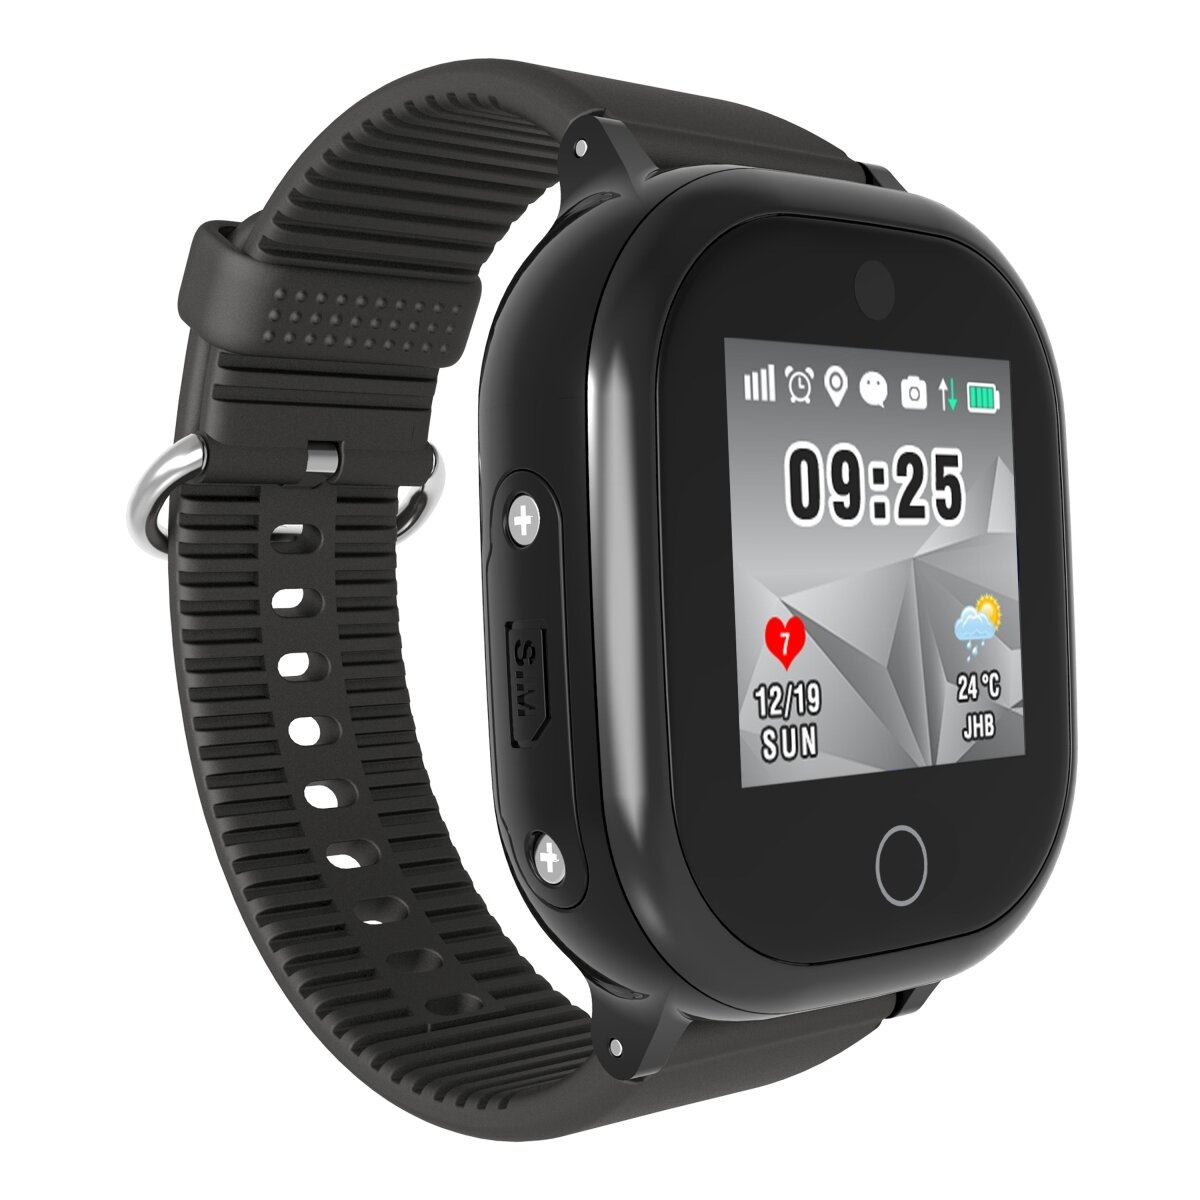 Volkano Find Me Pro Seriew GPS Tracking Watch with camera